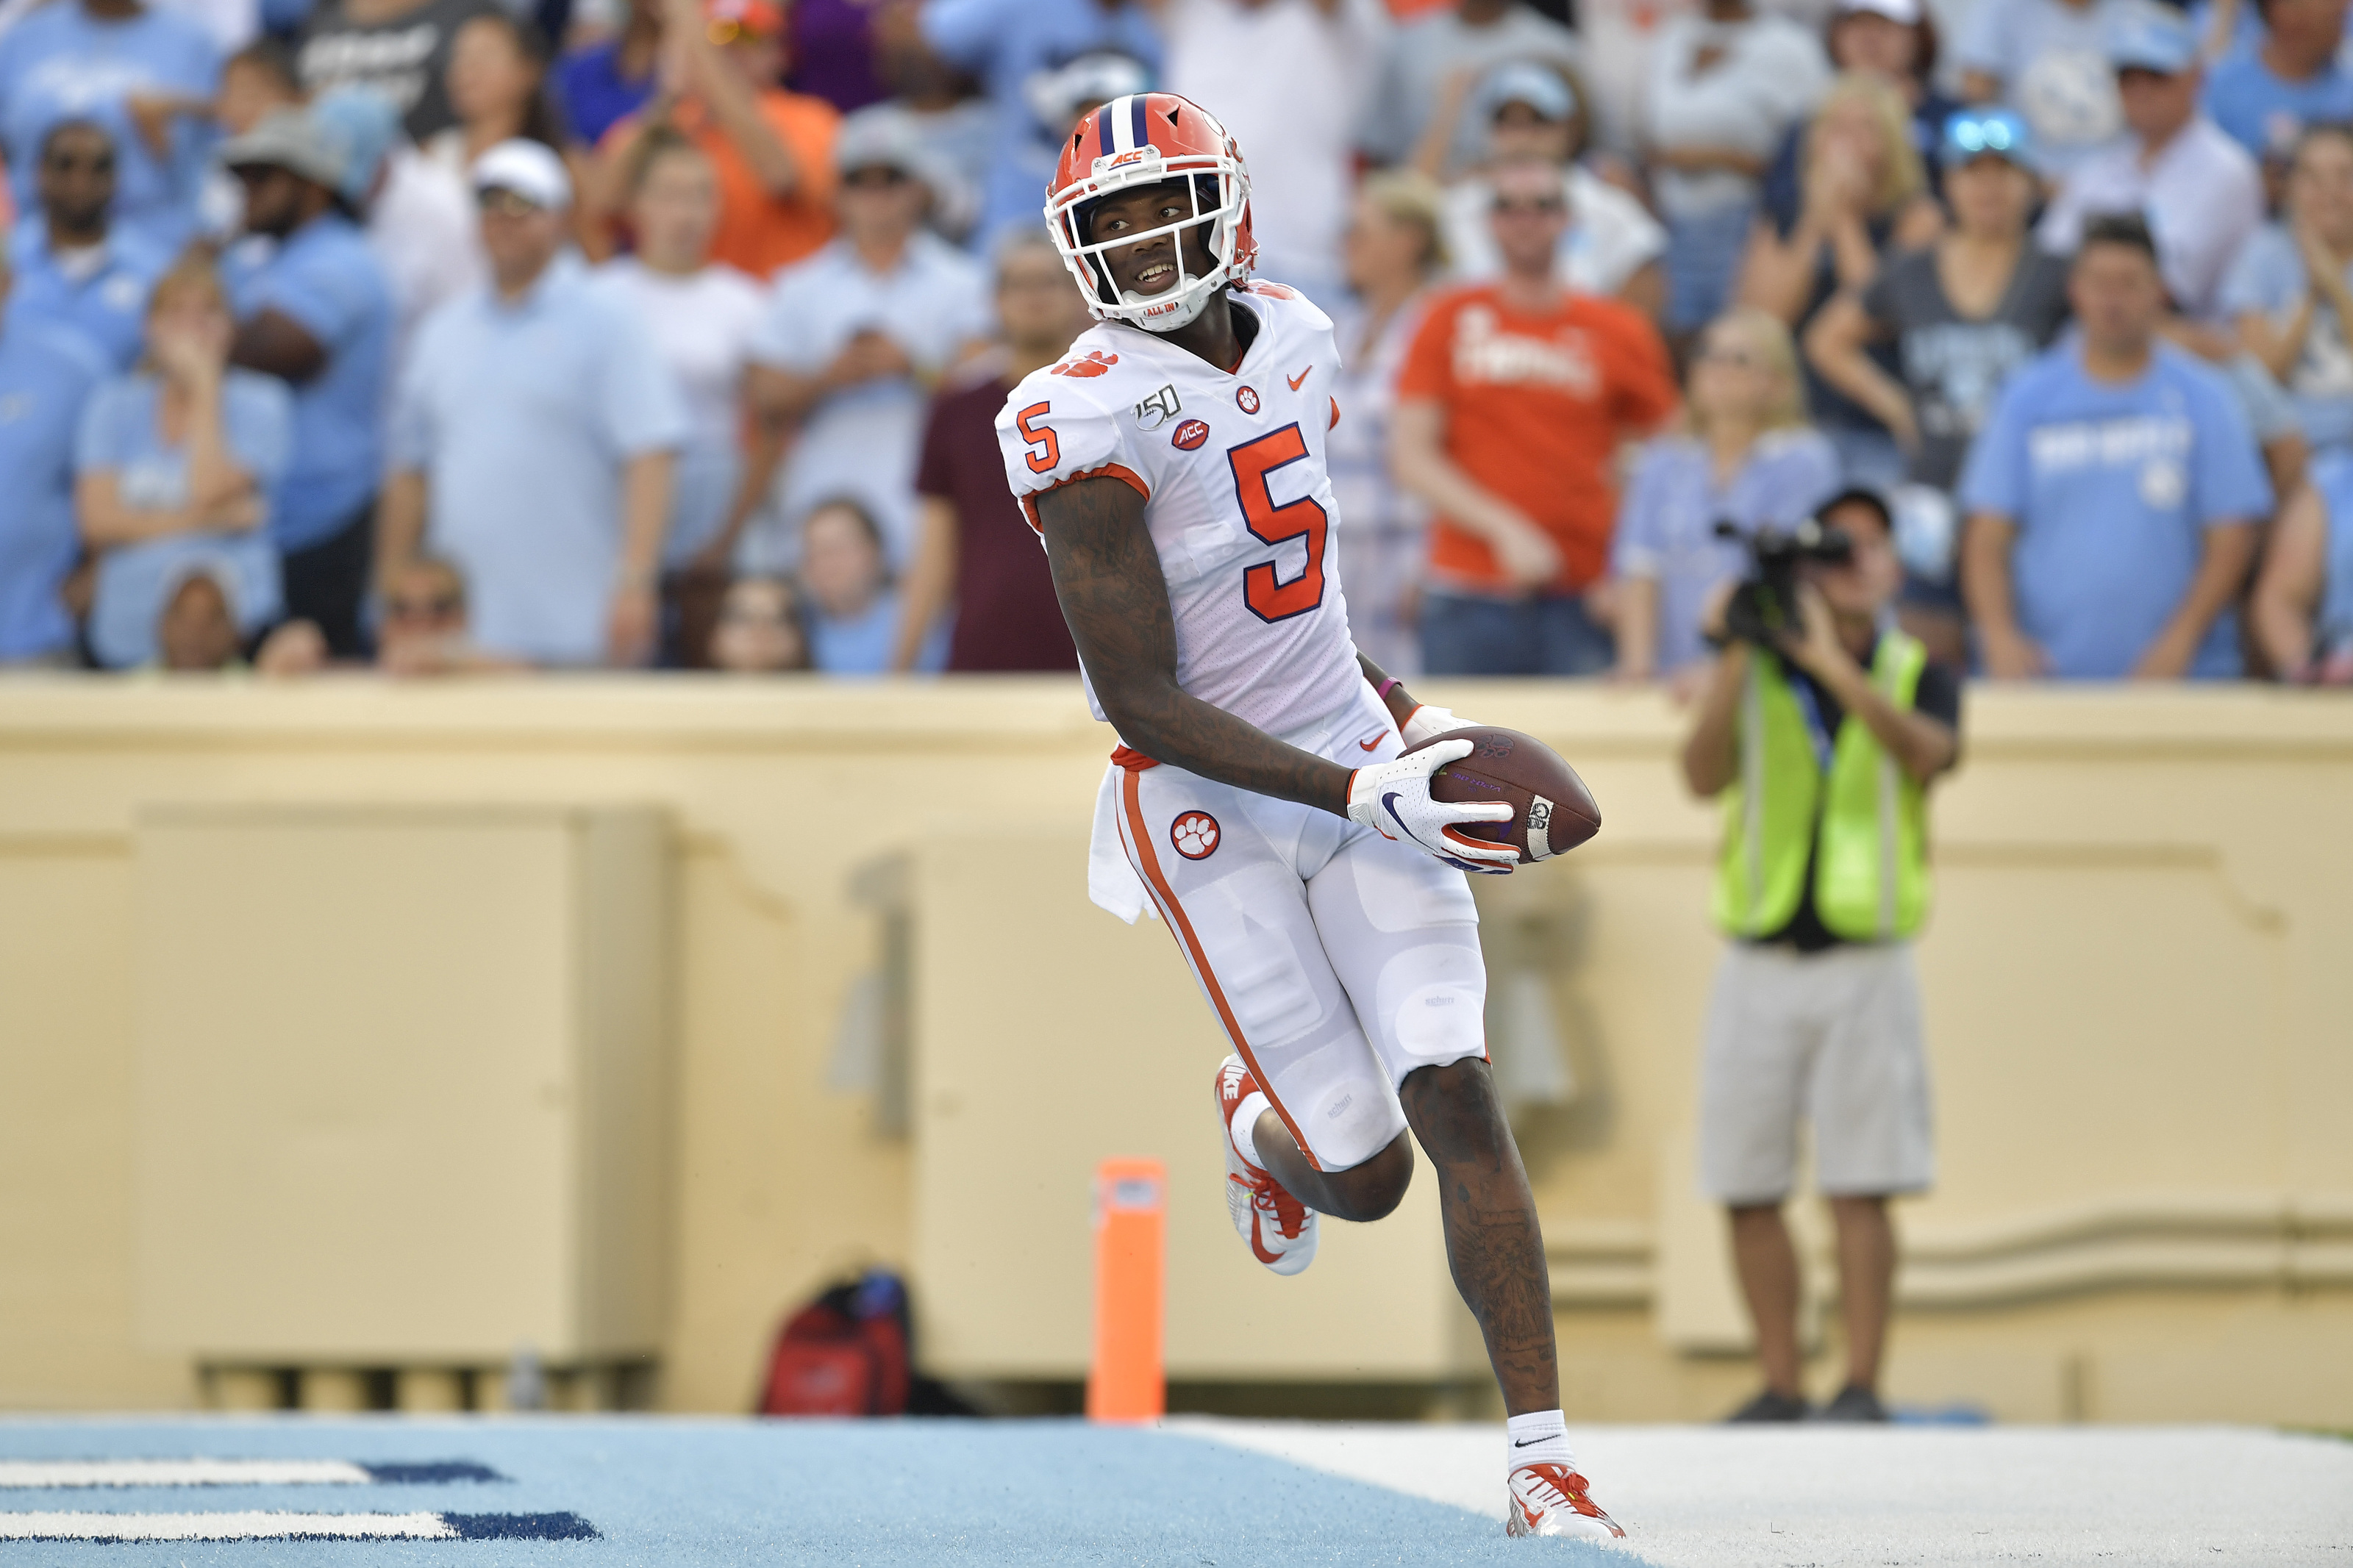 Bengals Draft Profile: Are the A.J. Green Comparisons Warranted for Tee Higgins?